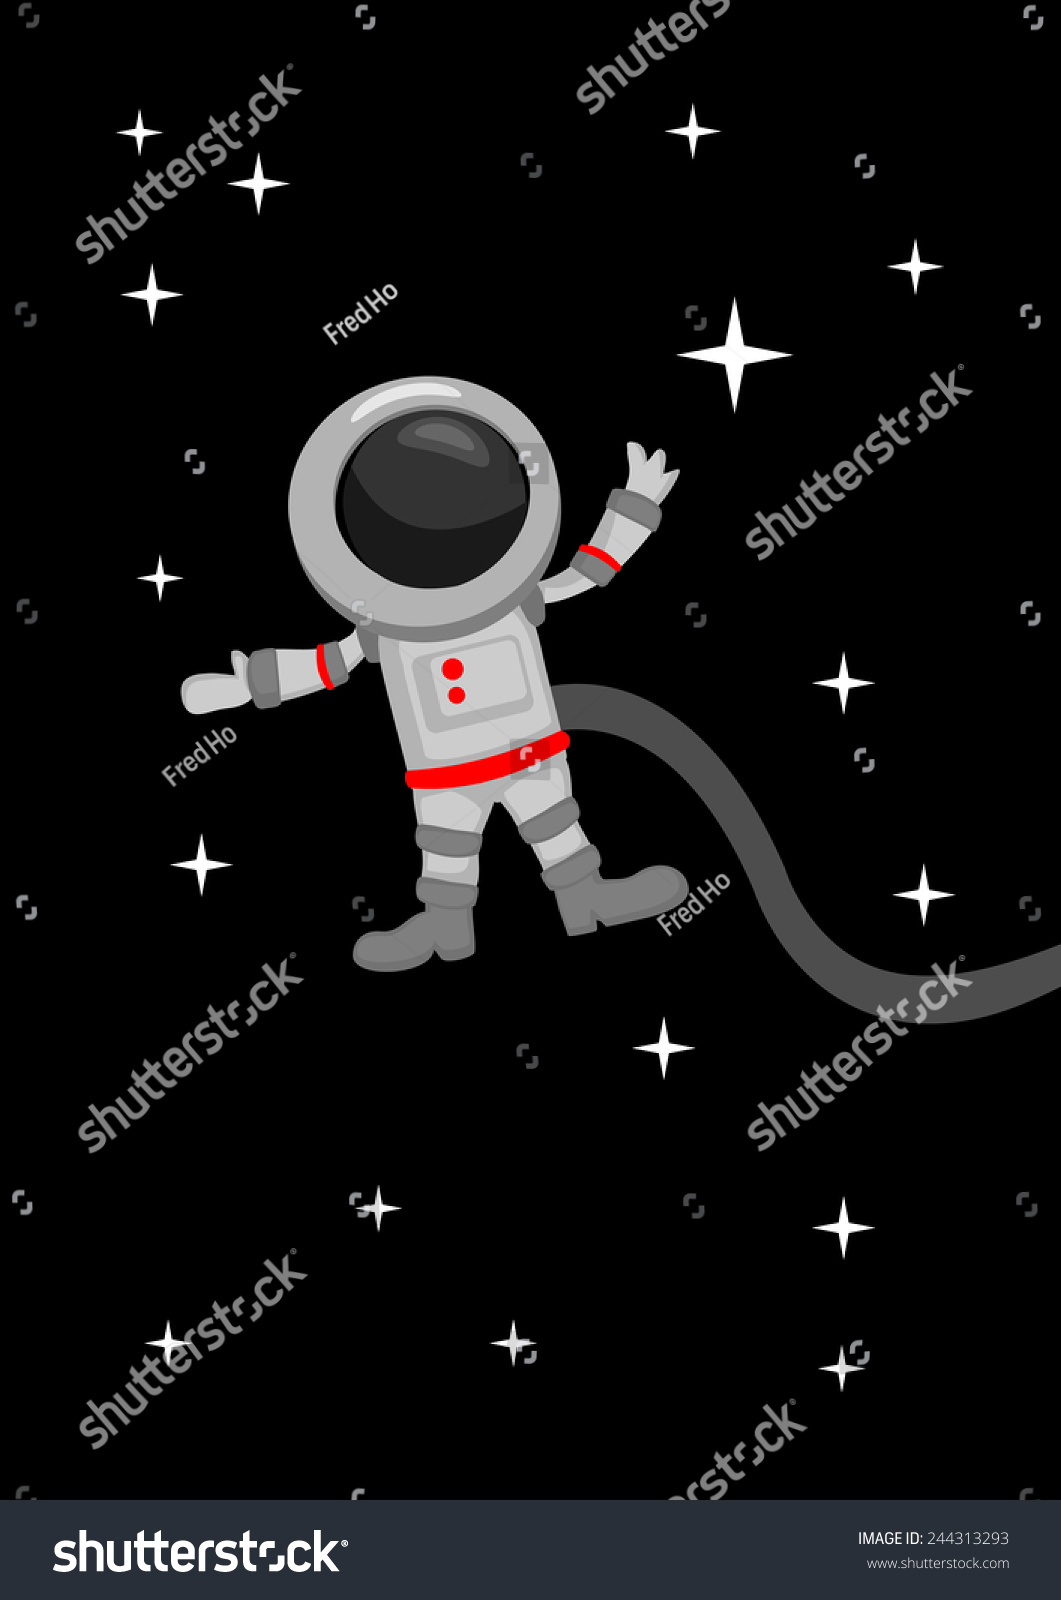 why astronauts in outer space experience weightlessness - photo #35